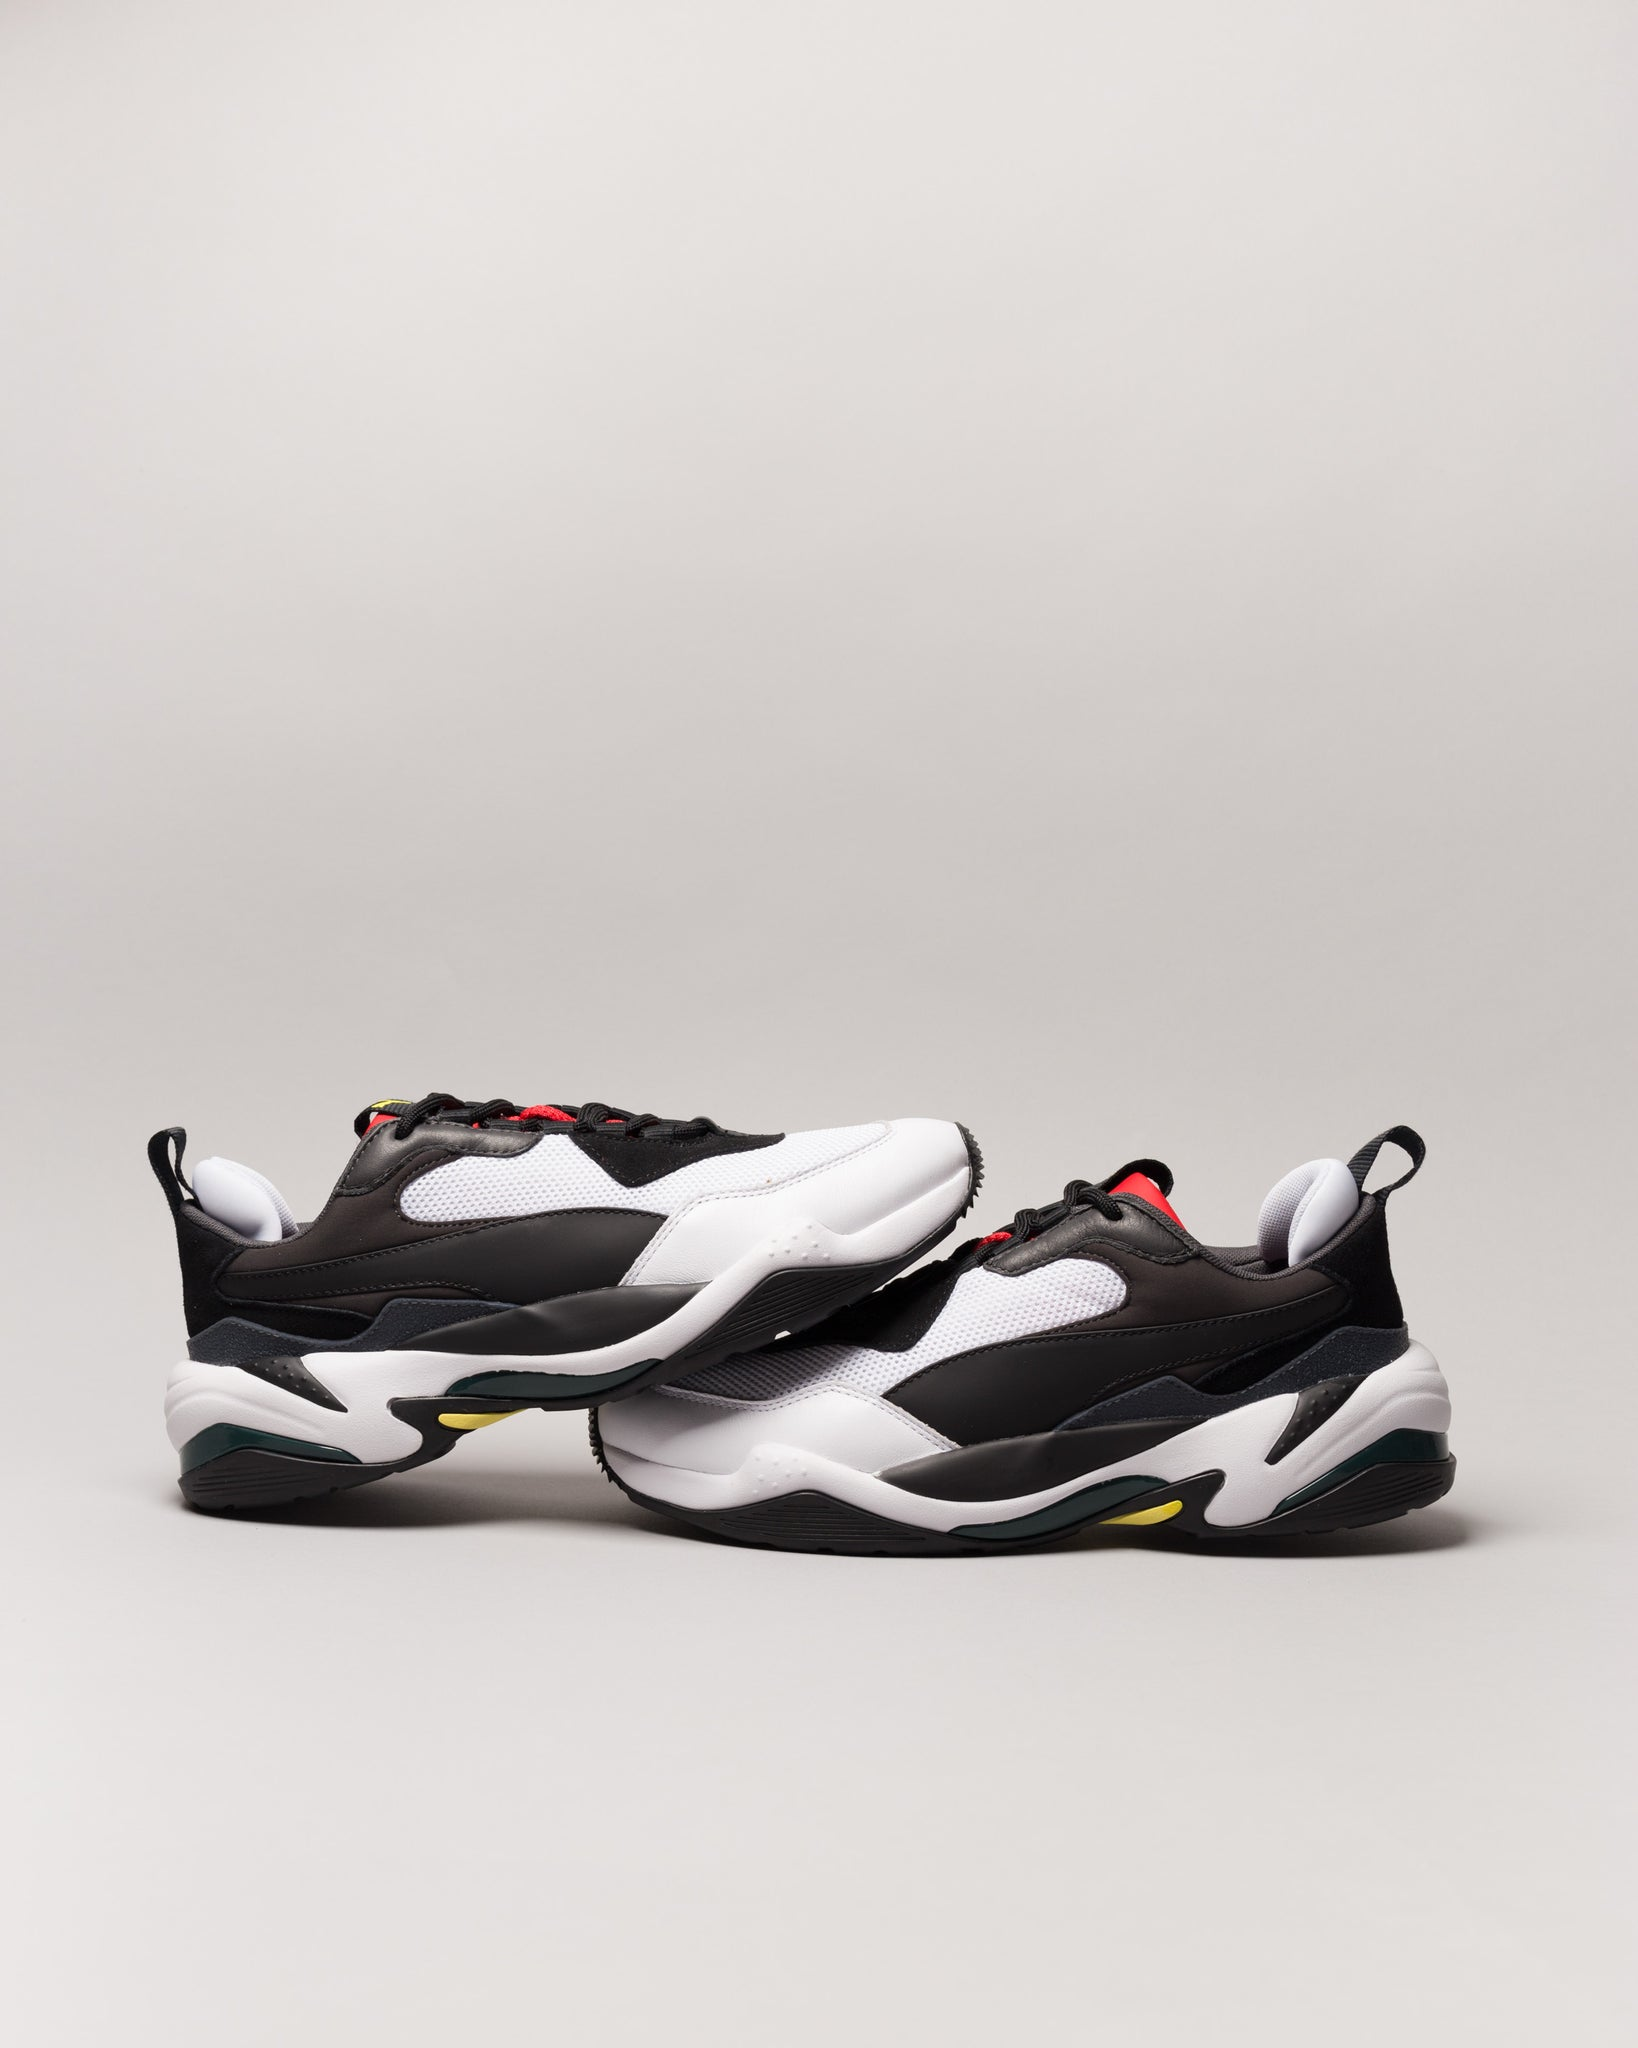 Thunder Spectra Black/High Risk Red